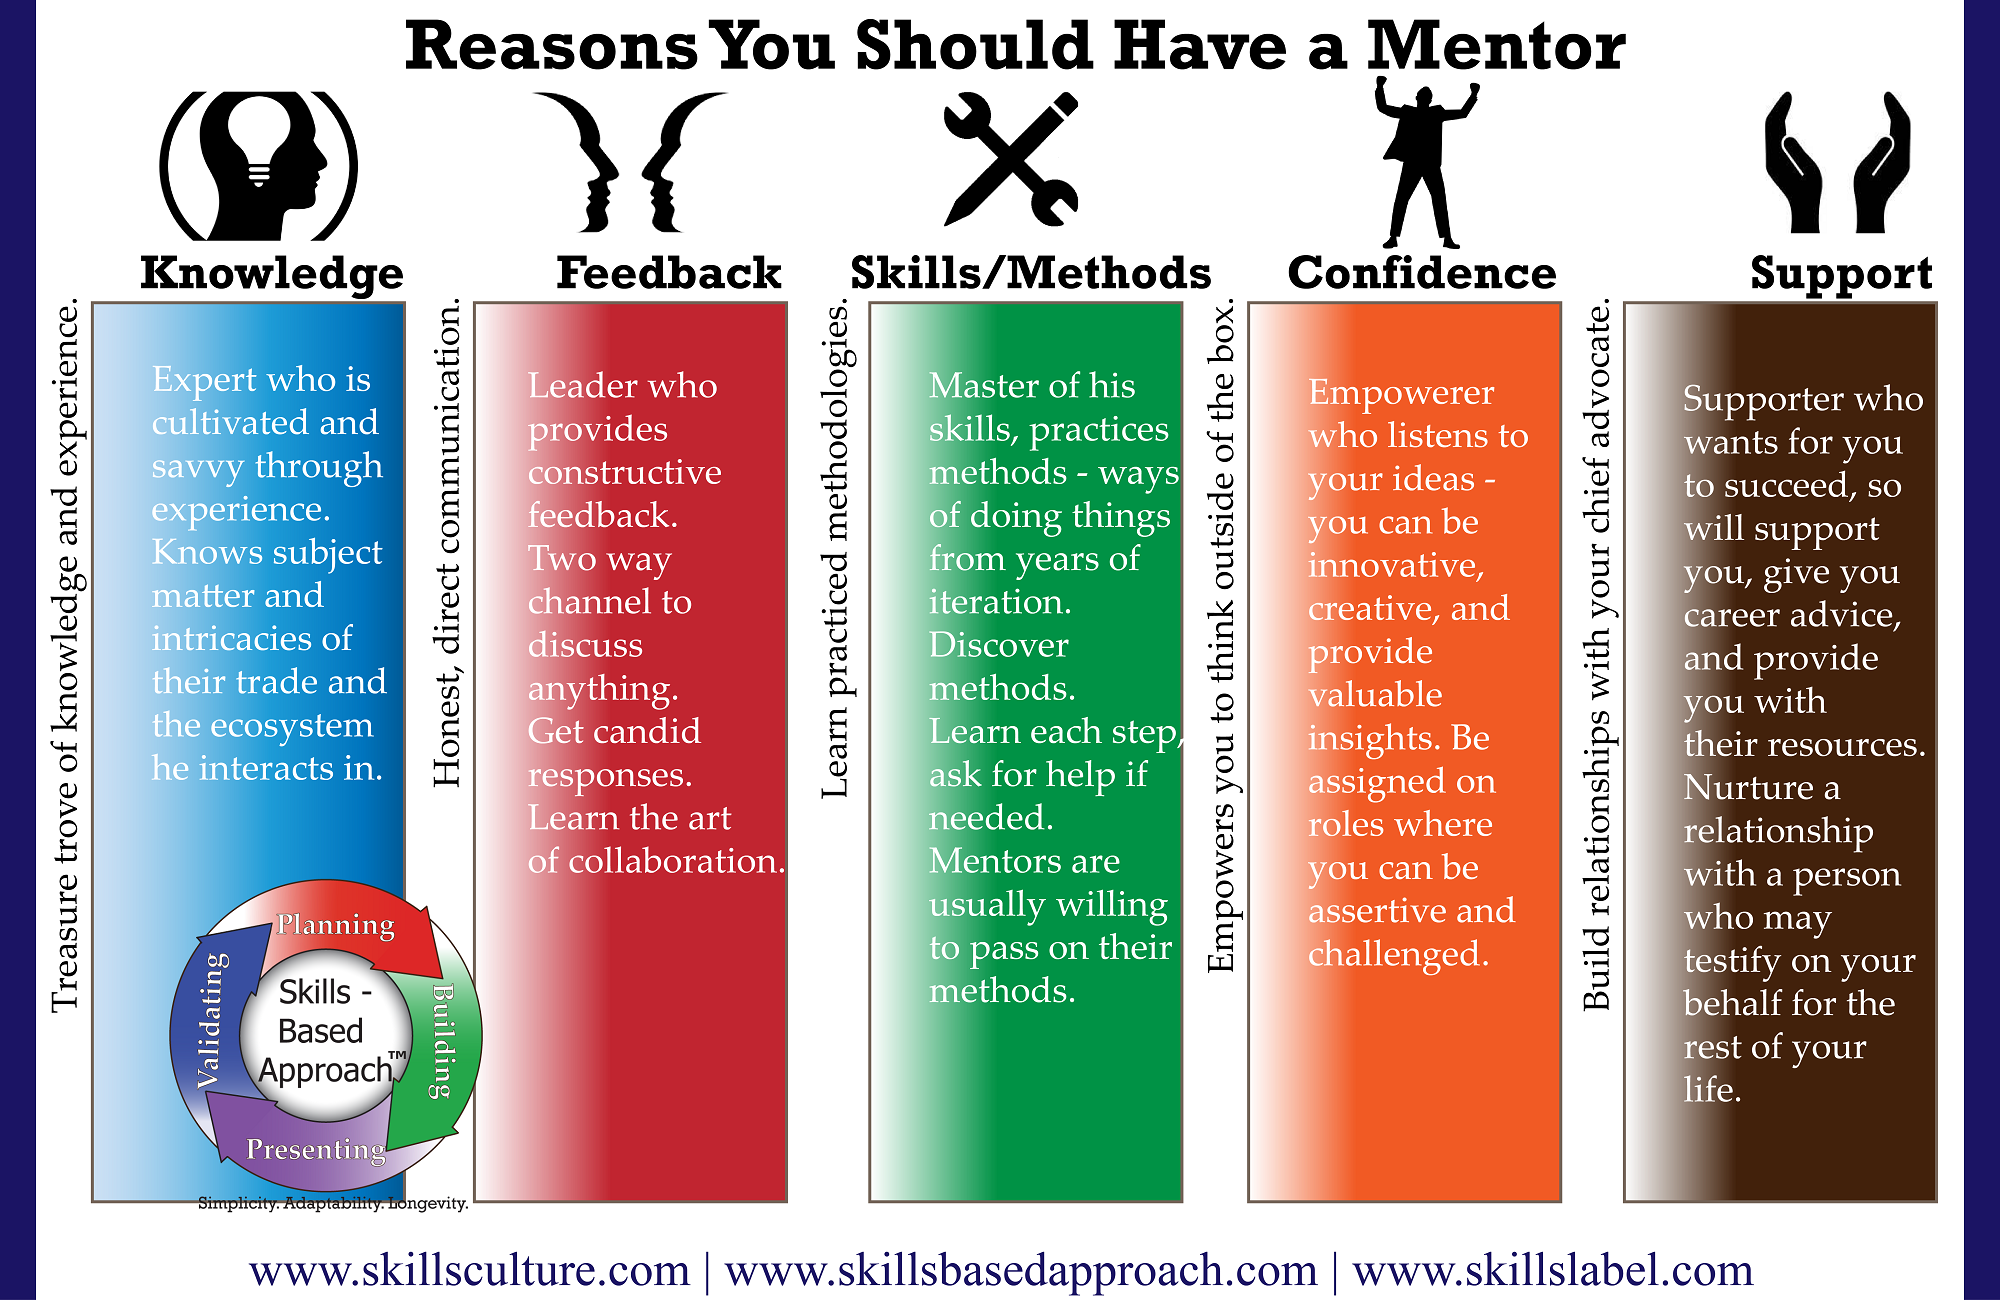 Reasons to Have a Mentor